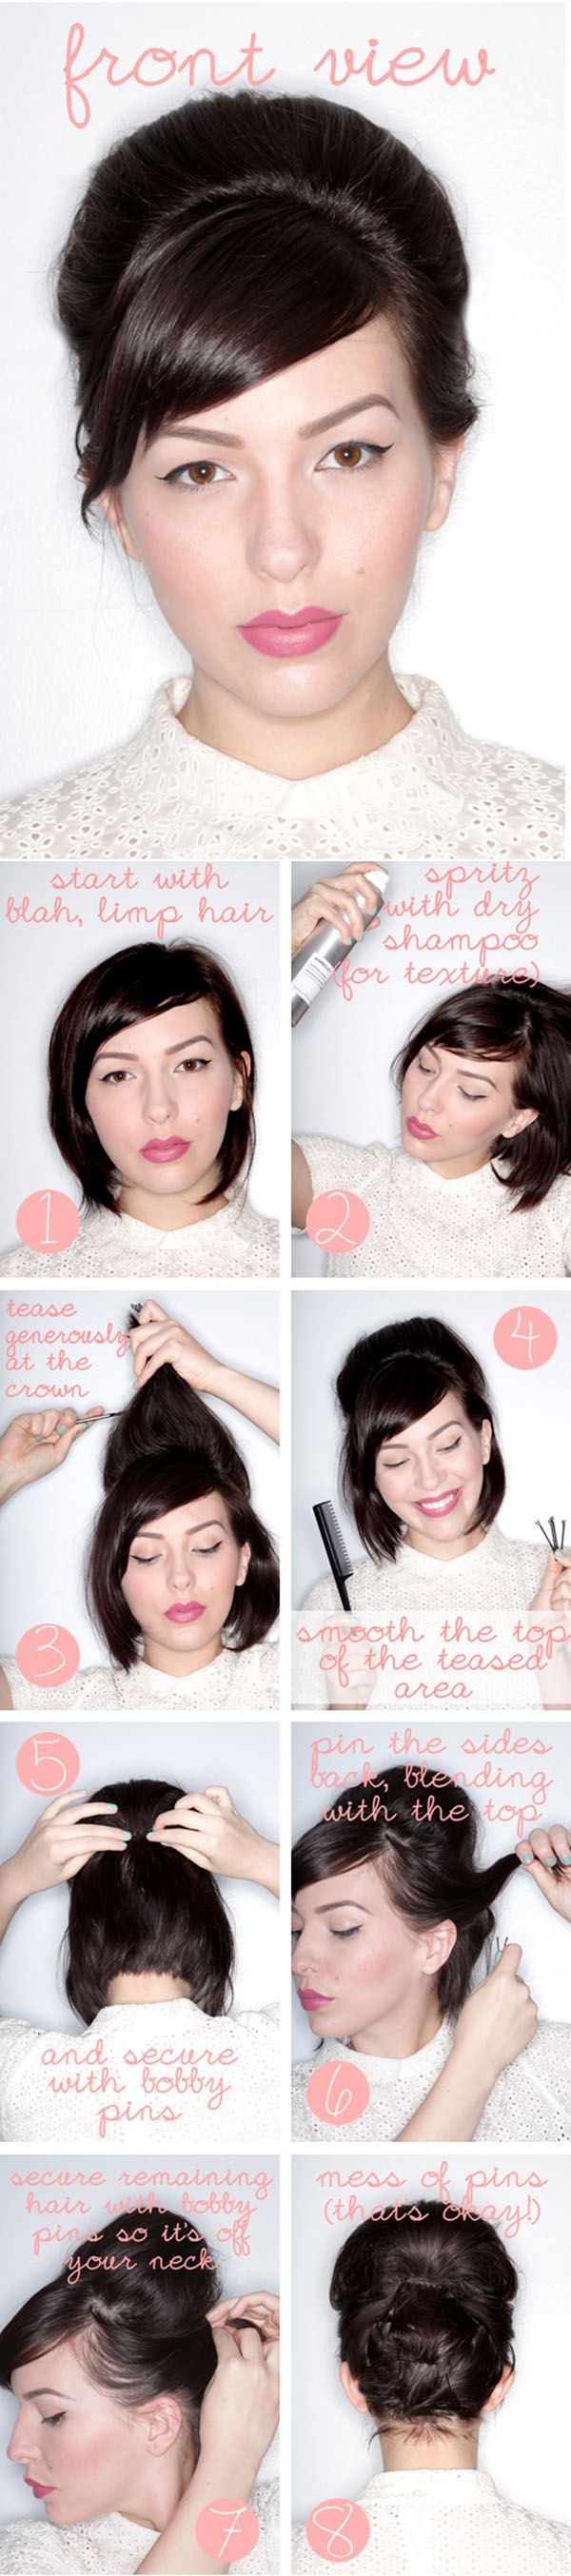 How to do an updo with short hair from Keiko Lynn and Hair Romance #hair #shorthair #updo #hairstyles http://www.hairromance.com/2013/05/how-to-do-an-updo-in-short-hair.html